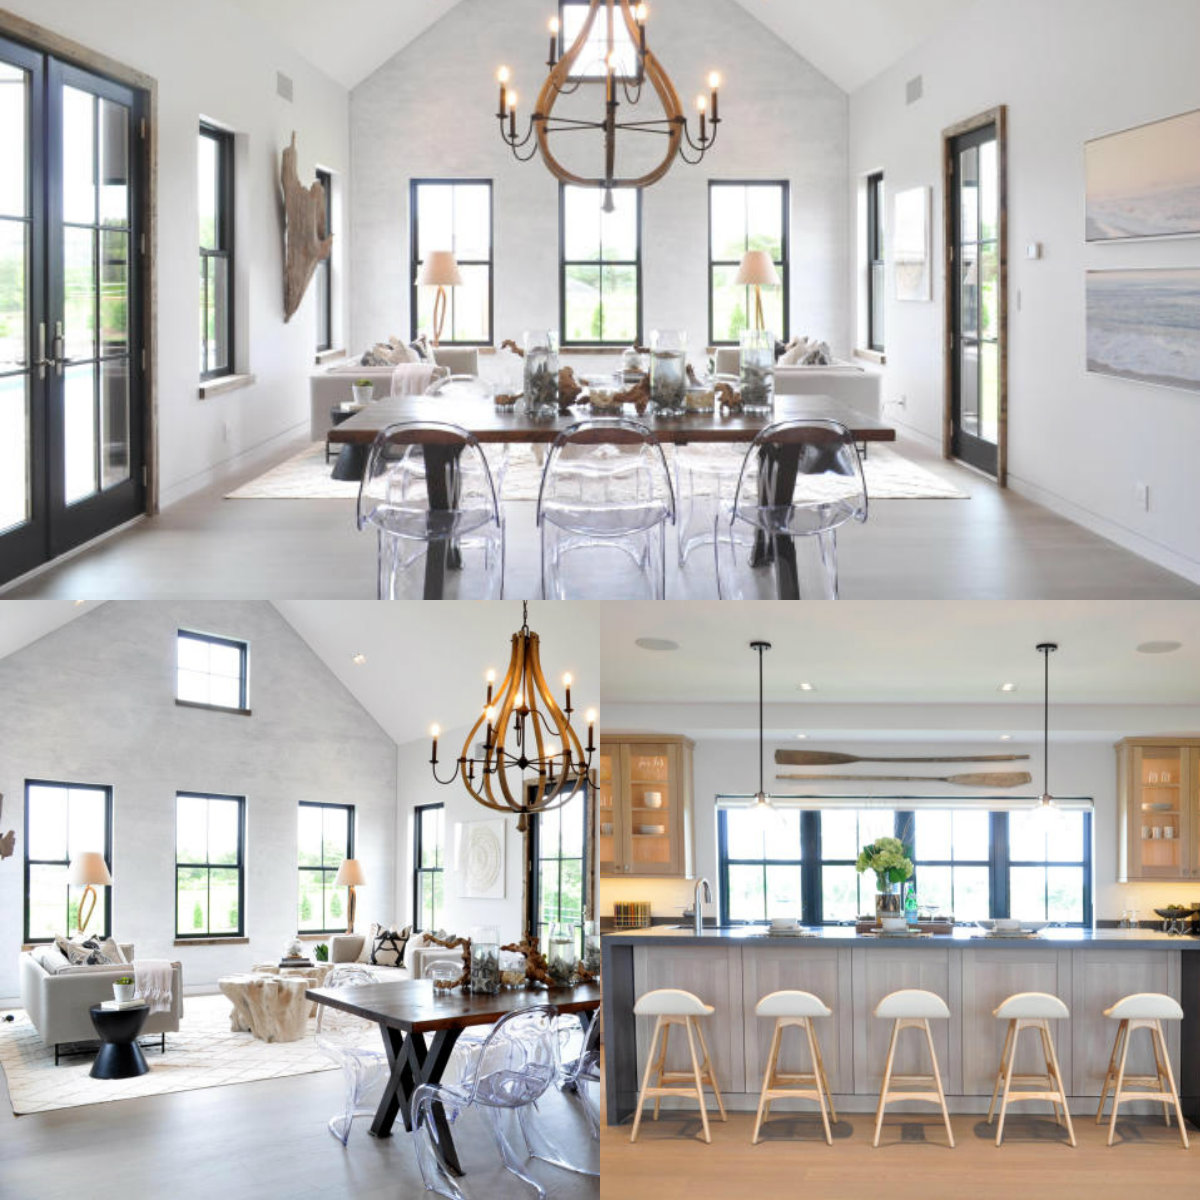 Images of rooms with windows in 10 Eat Fire Spring Road in Nantucket on Cape Cod MA